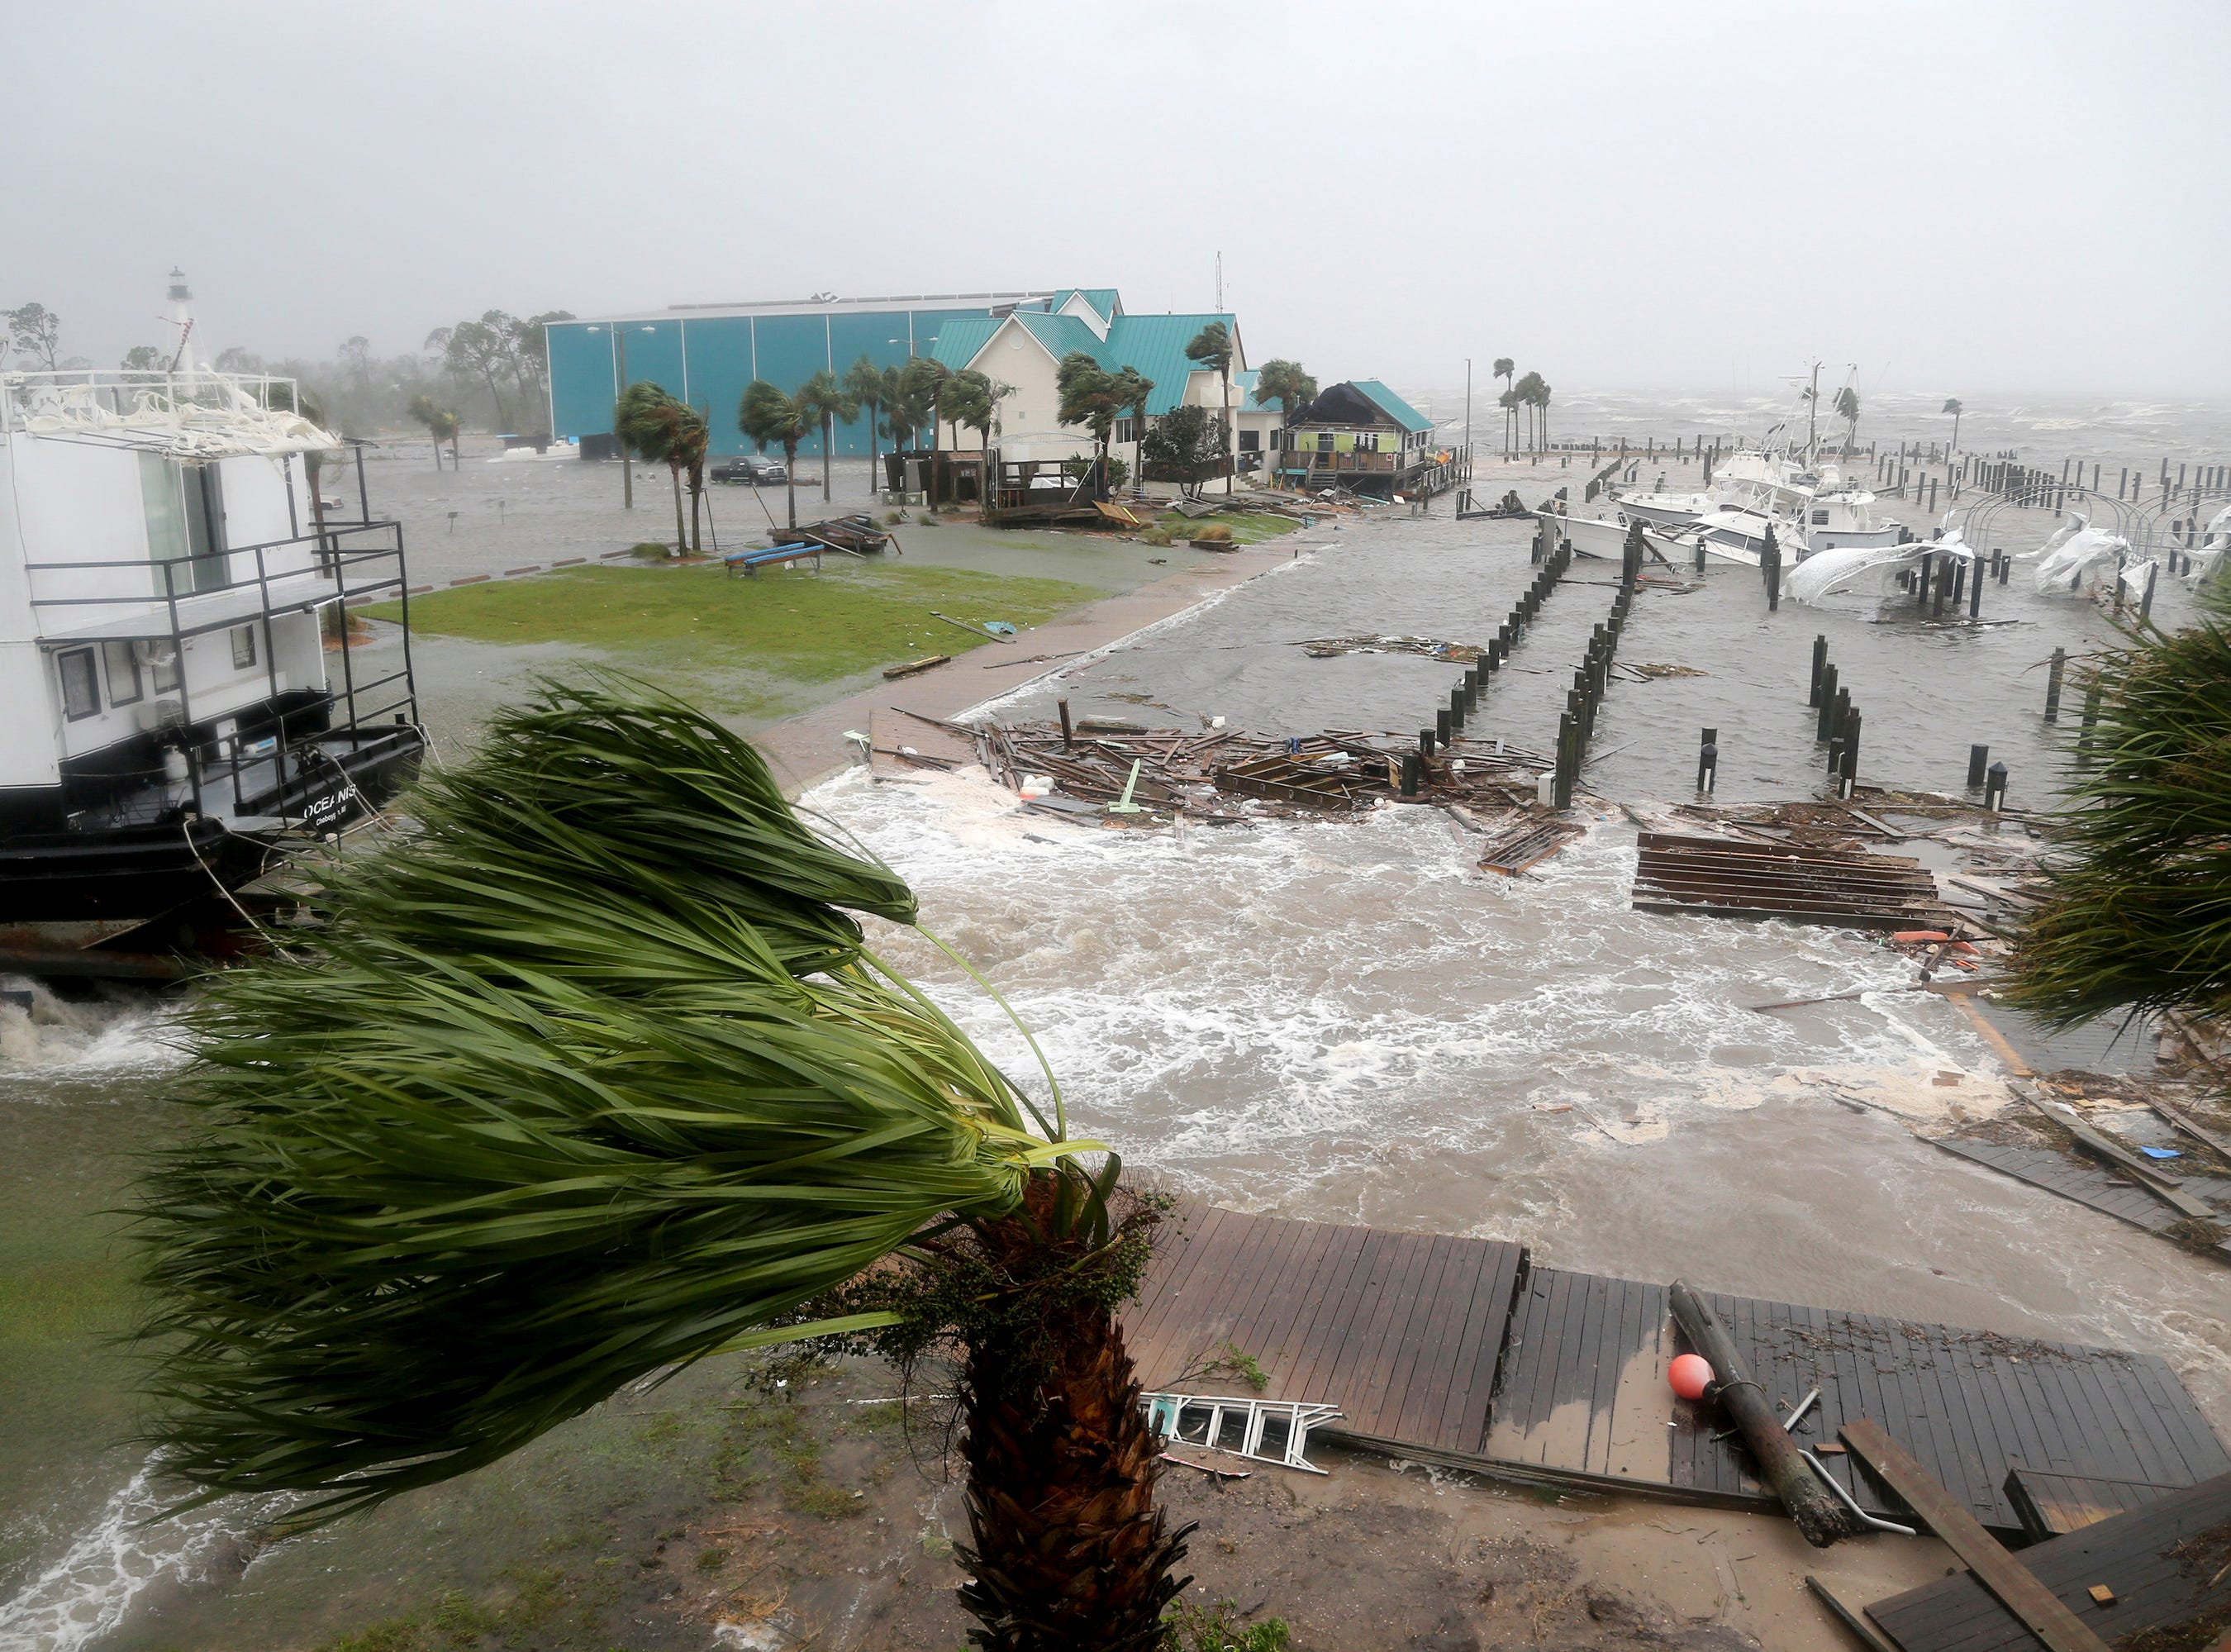 Boats lay sunk and damaged at the Port St. Joe Marina, Wednesday, Oct. 10, 2018 in Port St. Joe, Fla. Supercharged by abnormally warm waters in the Gulf of Mexico, Hurricane Michael slammed into the Florida Panhandle with terrifying winds of 155 mph Wednesday, splintering homes and submerging neighborhoods.